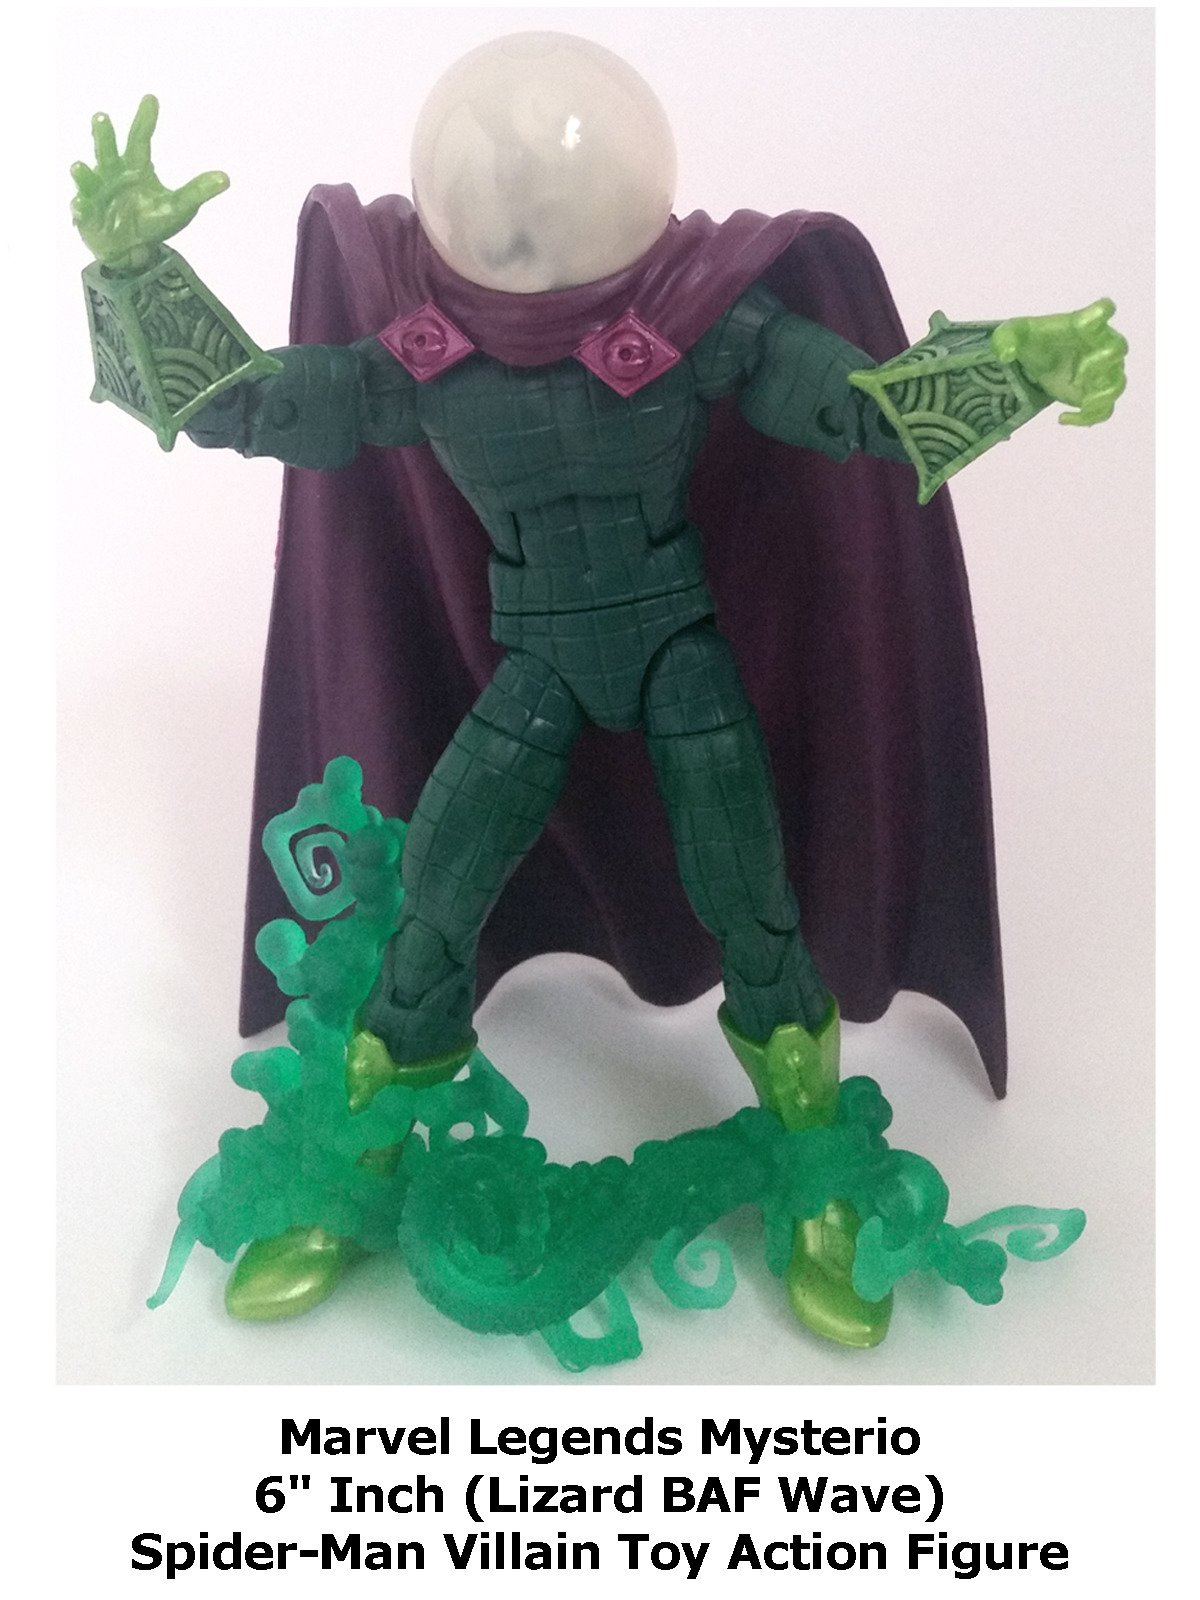 "Review: Marvel Legends Mysterio 6"" Inch (Lizard BAF Wave) Spider-Man Villain Toy Action Figure"